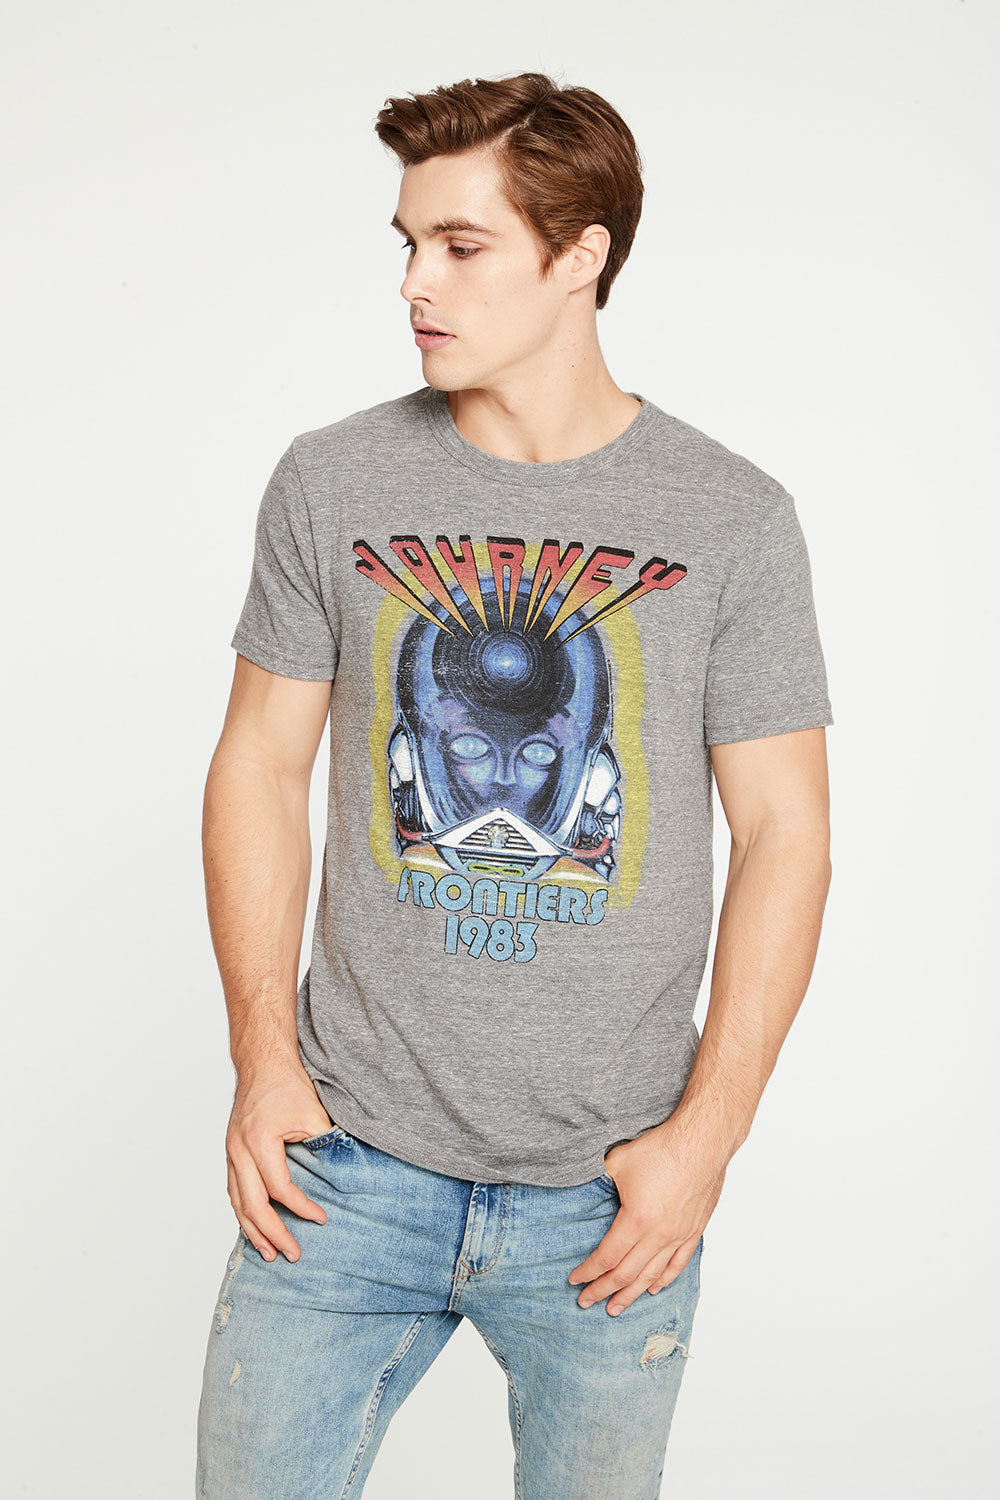 Journey - Frontiers 1983 MENS chaserbrand4.myshopify.com